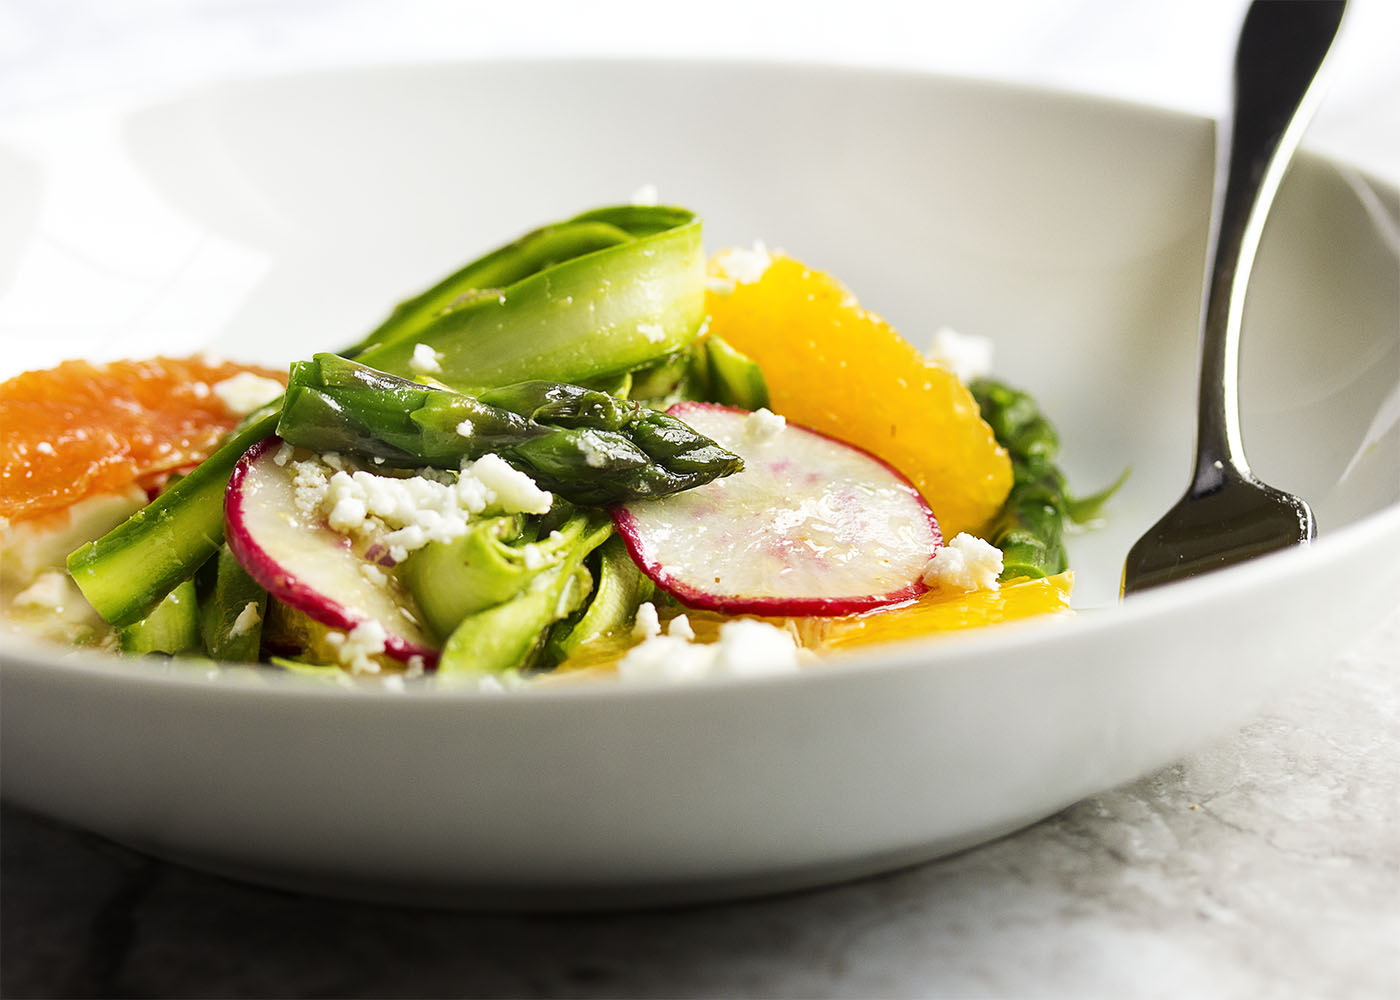 Shaved Asparagus and Orange Salad - Looking for something a little different to do with asparagus? Bored with your usual salad routine? Shaved asparagus salad is great and fun way to use asparagus with sweet oranges and spicy radishes all tossed with an orange vinaigrette.   justalittlebitofbacon.com